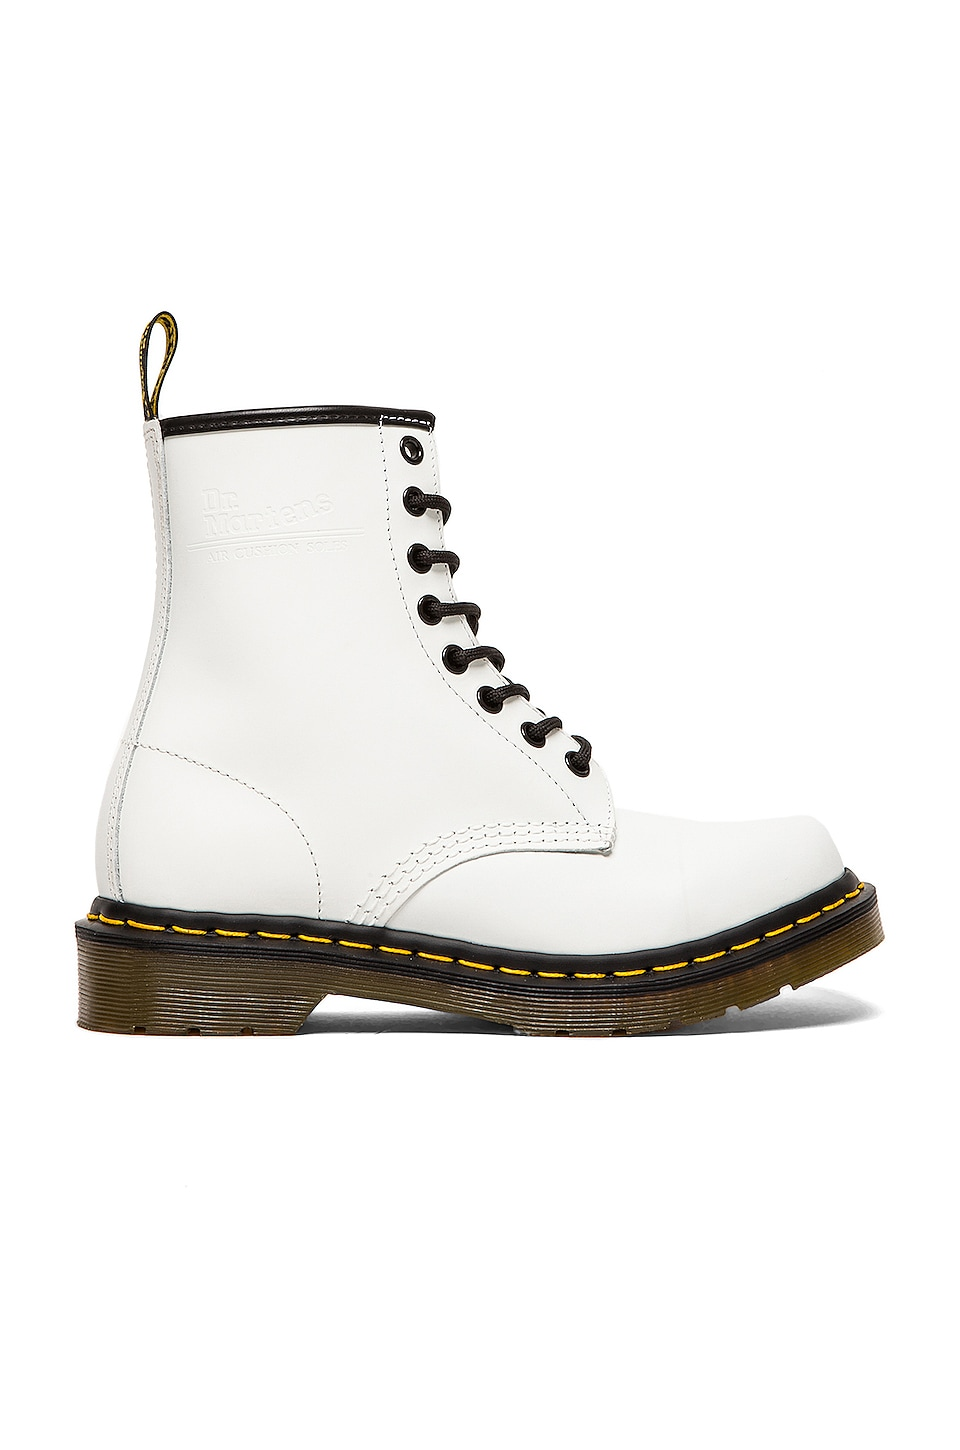 Dr. Martens 1460 8 Eye Boot in White